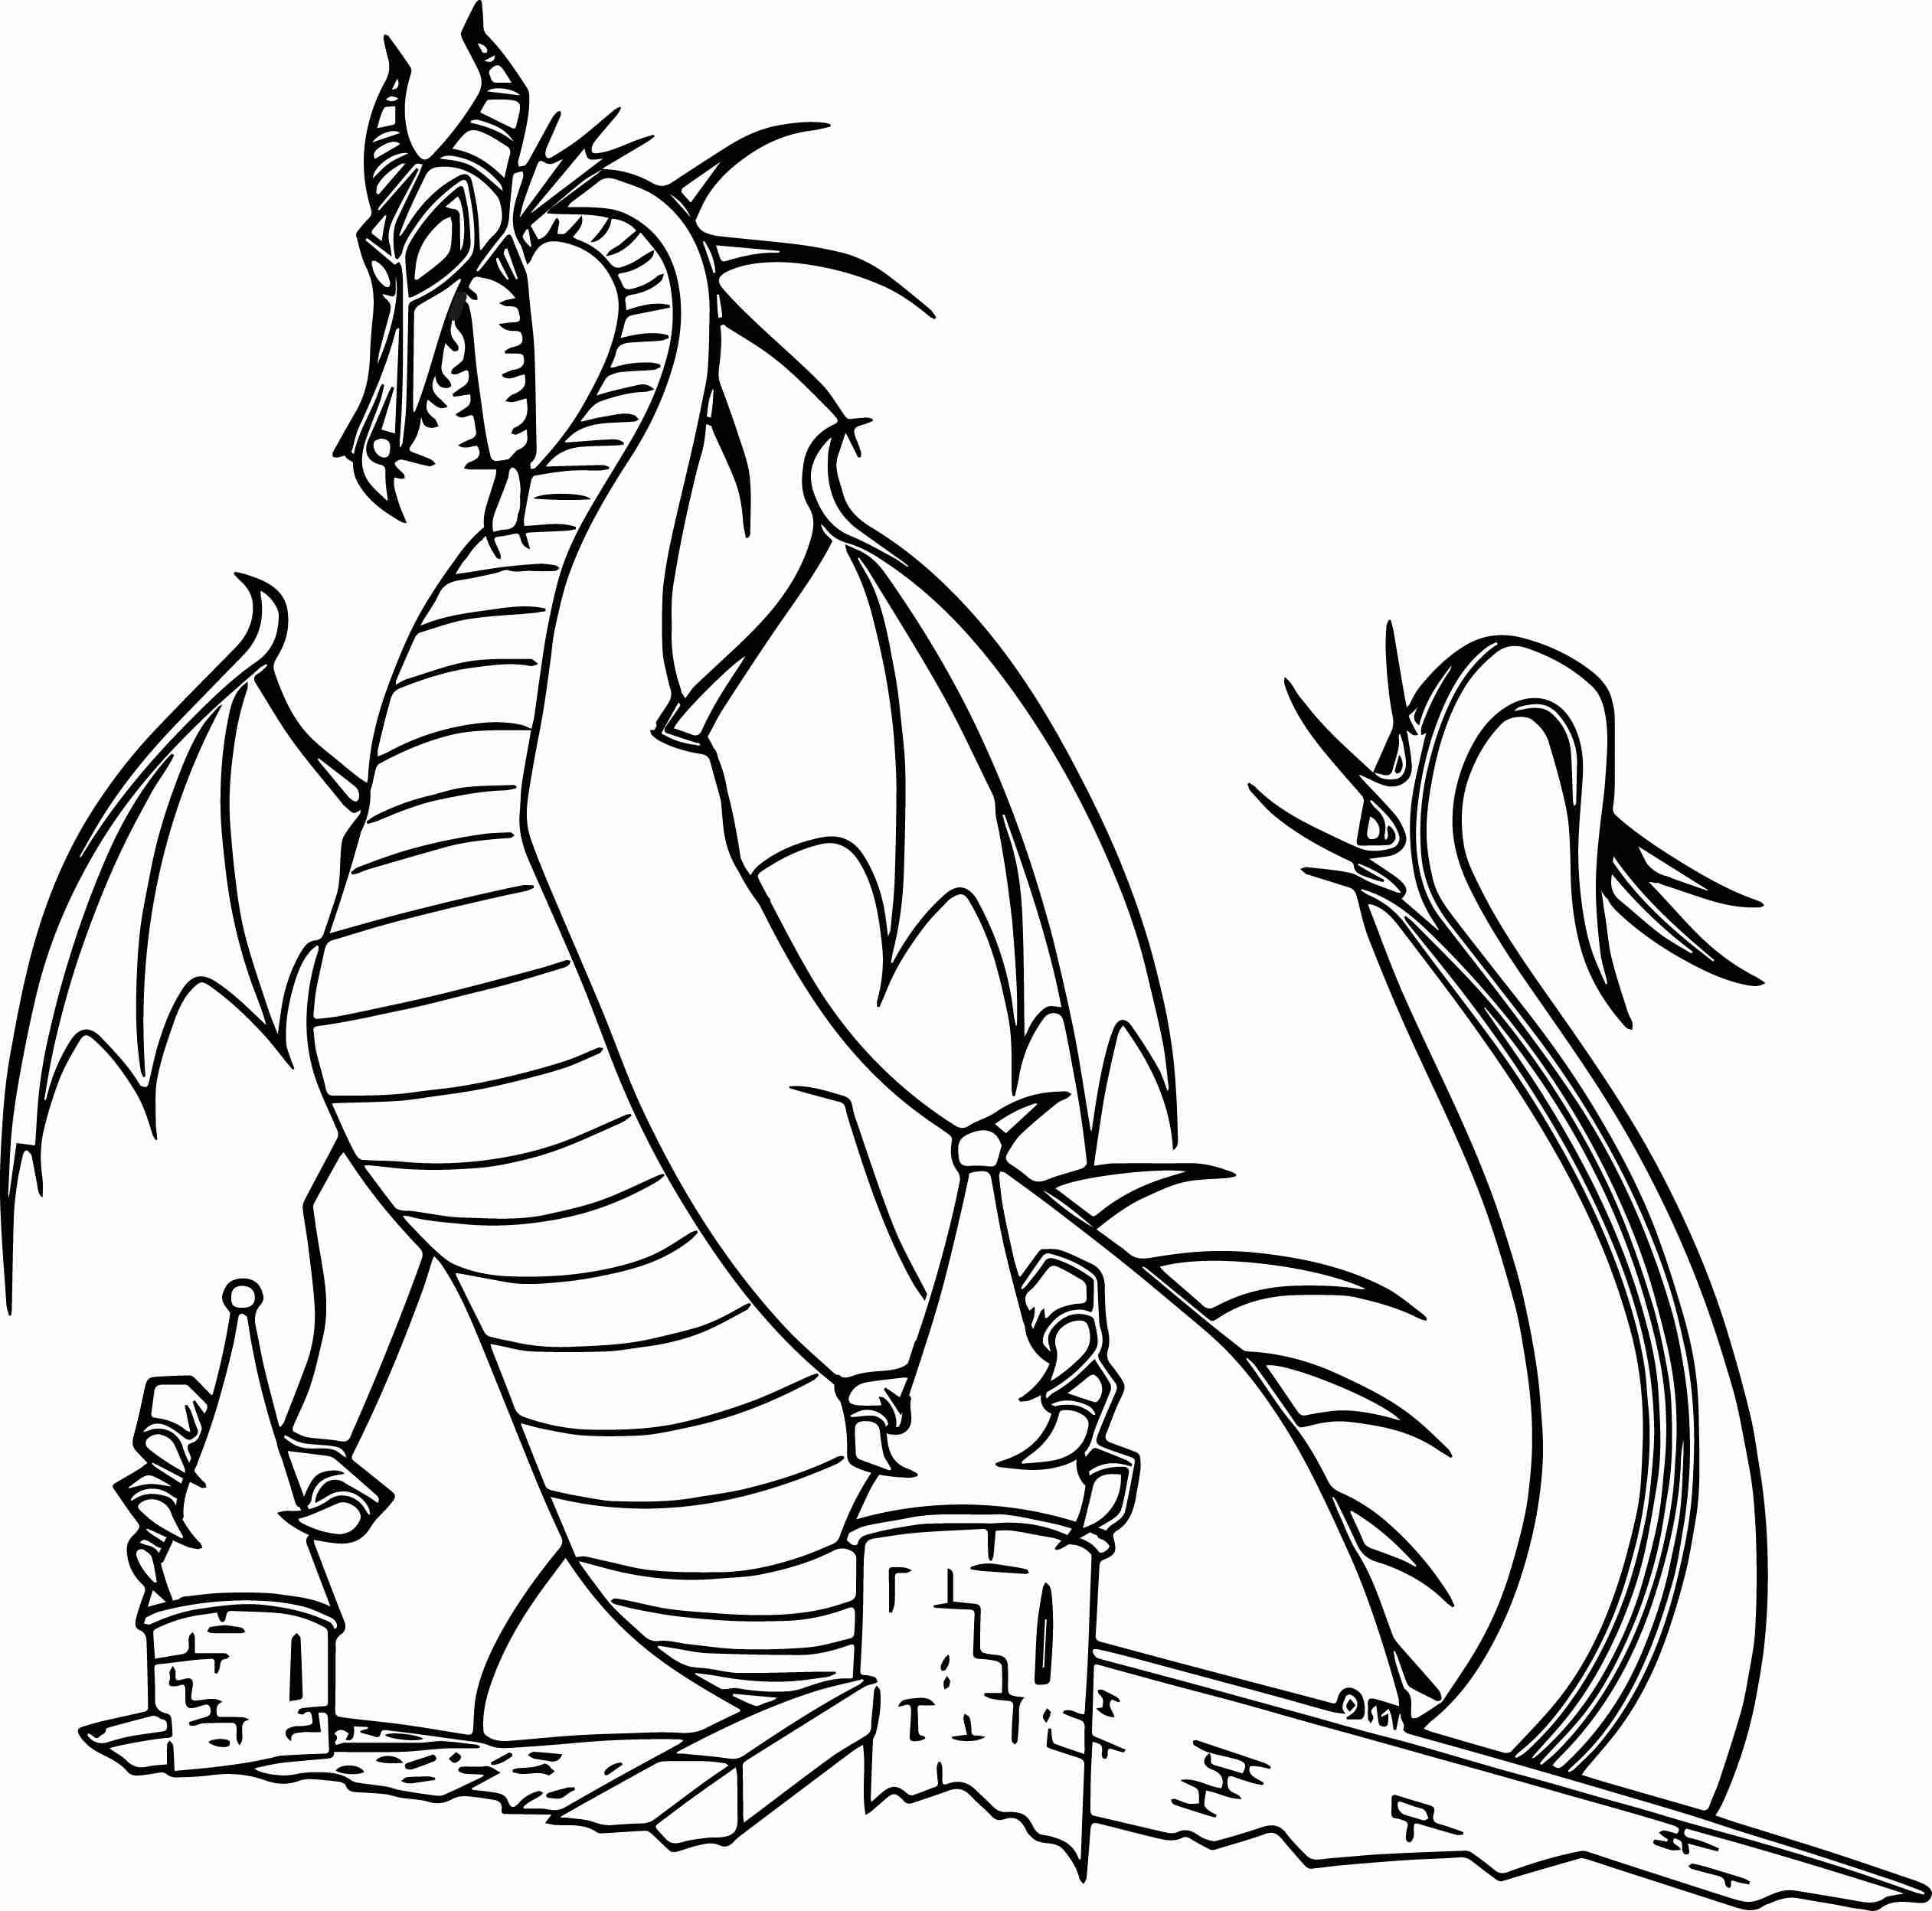 2523x2496 Maleficent Dragon Castle Cartoon Coloring Page Wecoloringpage